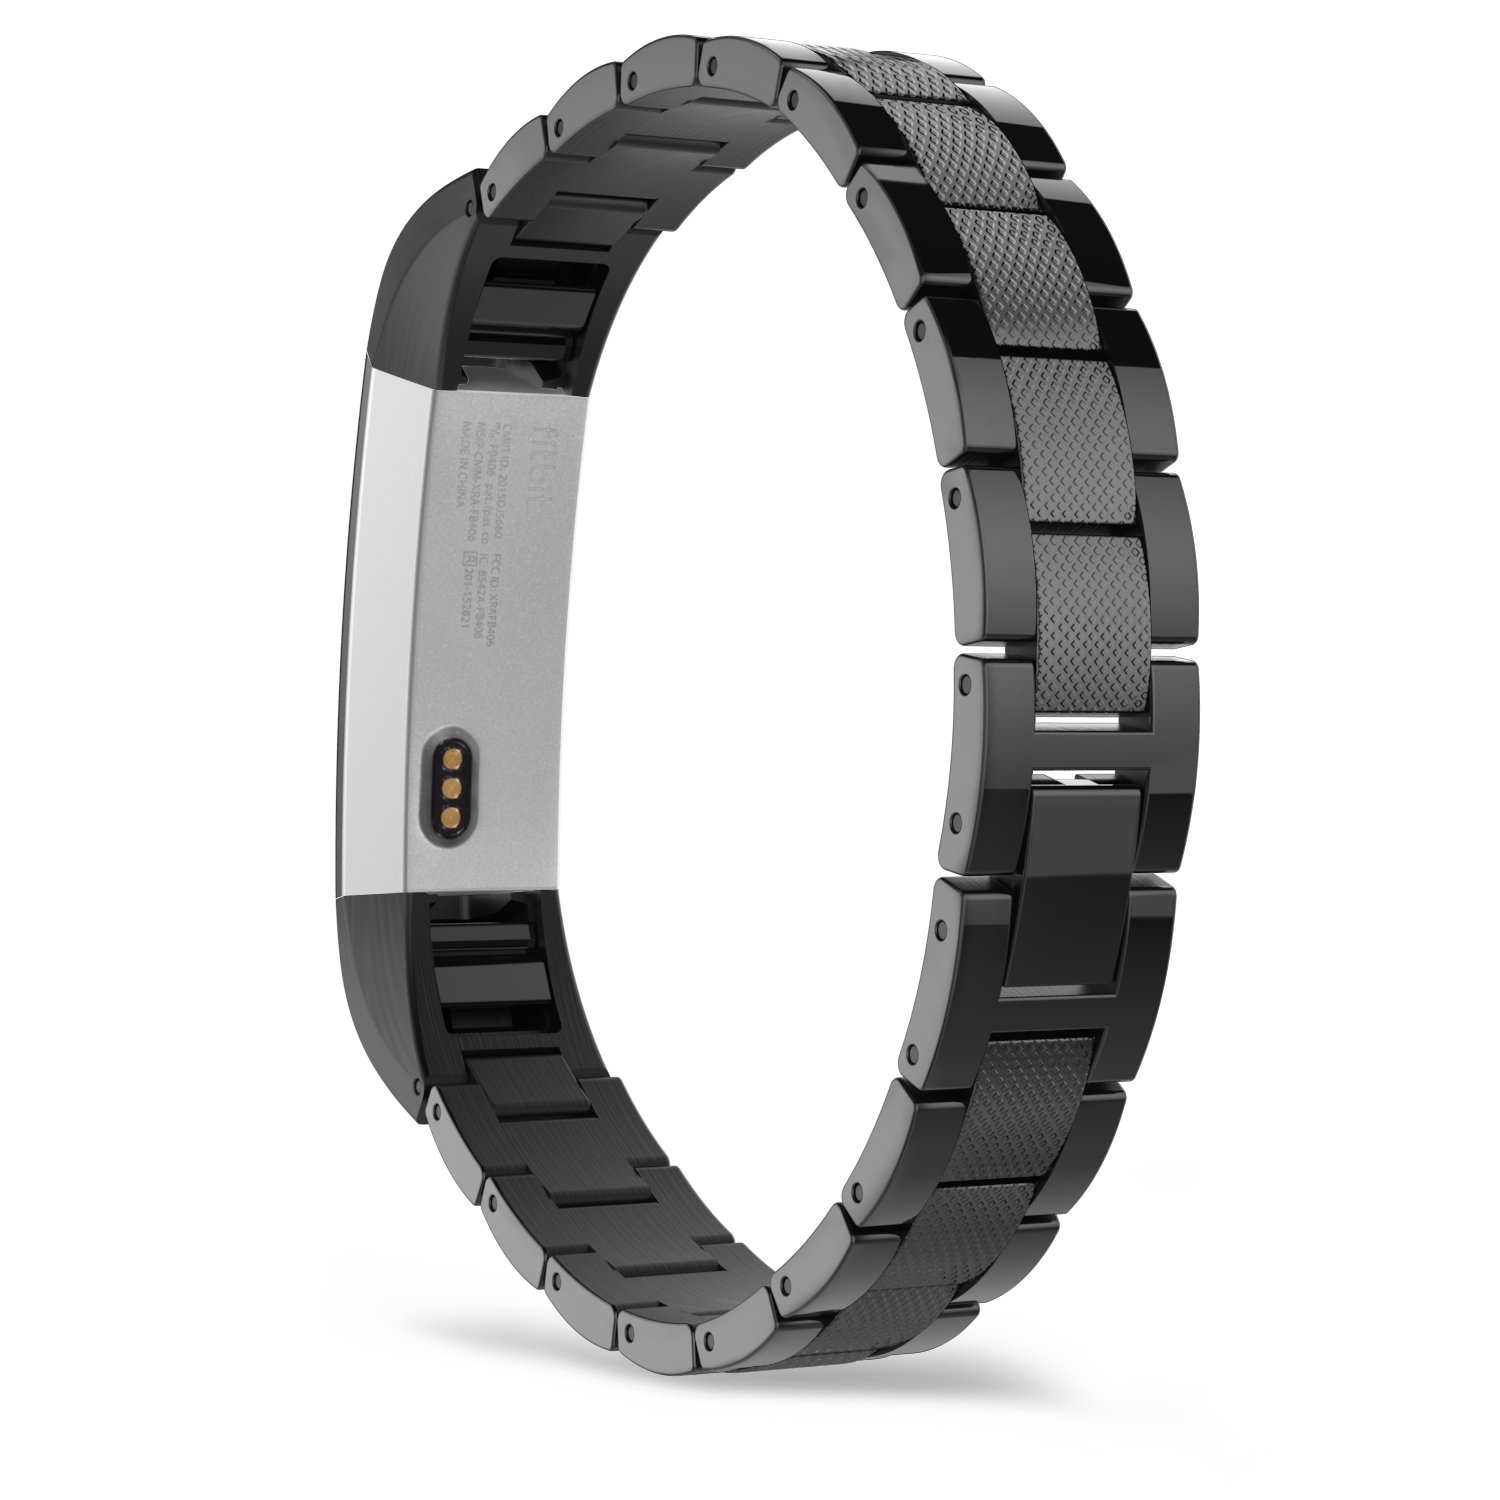 MoKo Fitbit Alta HR and Alta Band, Universal Stainless Steel Replacement Classic Watch Strap Band Bracelet with Fold Over Clasp for Fitbit Alta/Fitbit Alta HR, Tracker NOT Included - BLACK